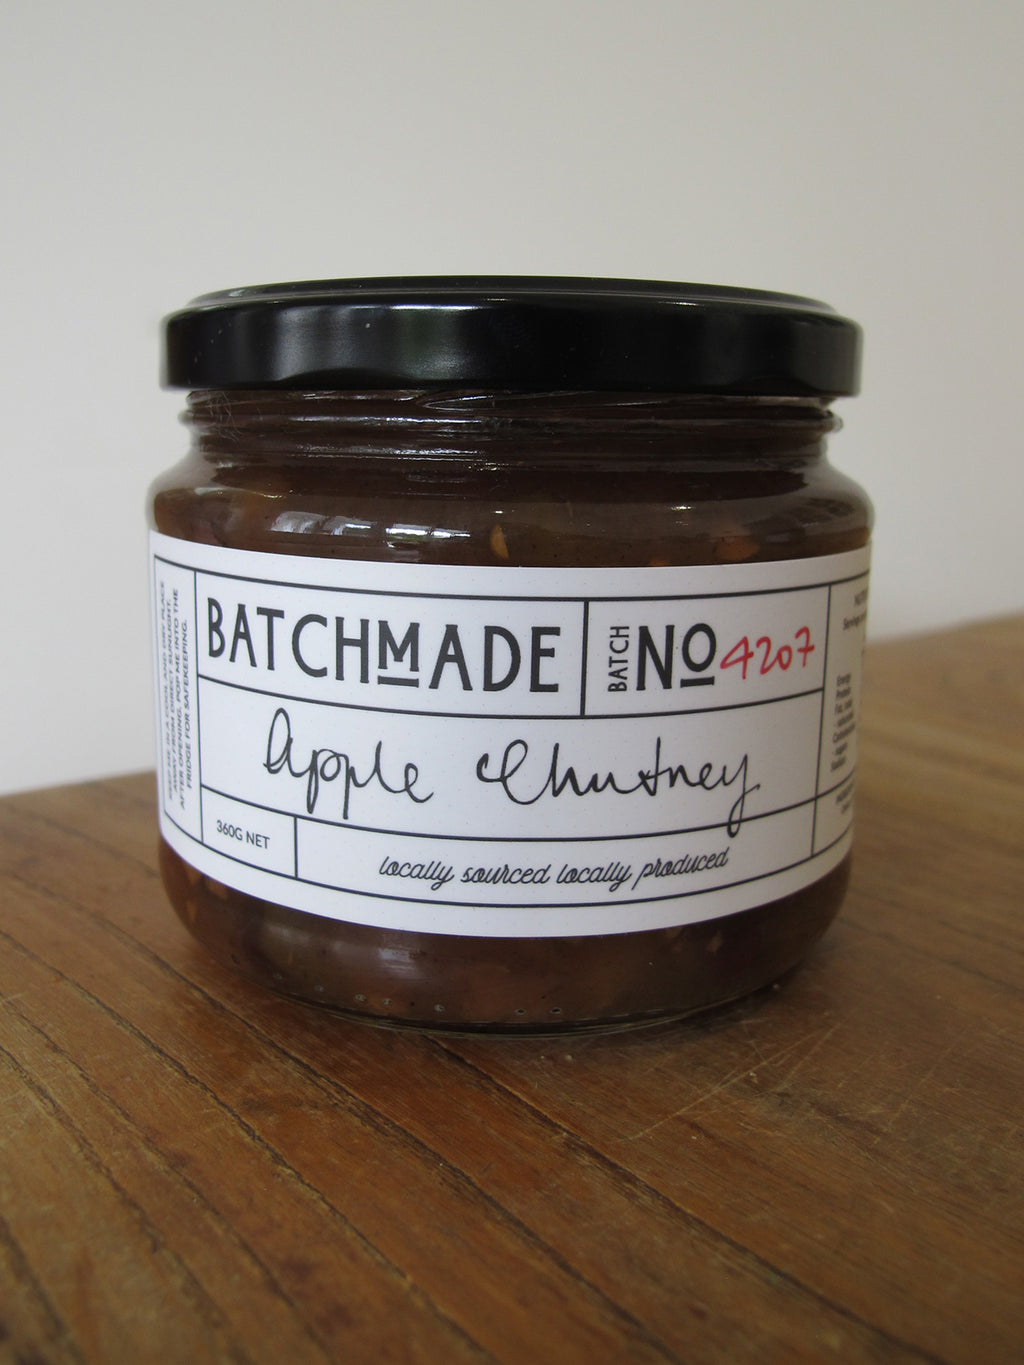 Apple chutney by BatchMade